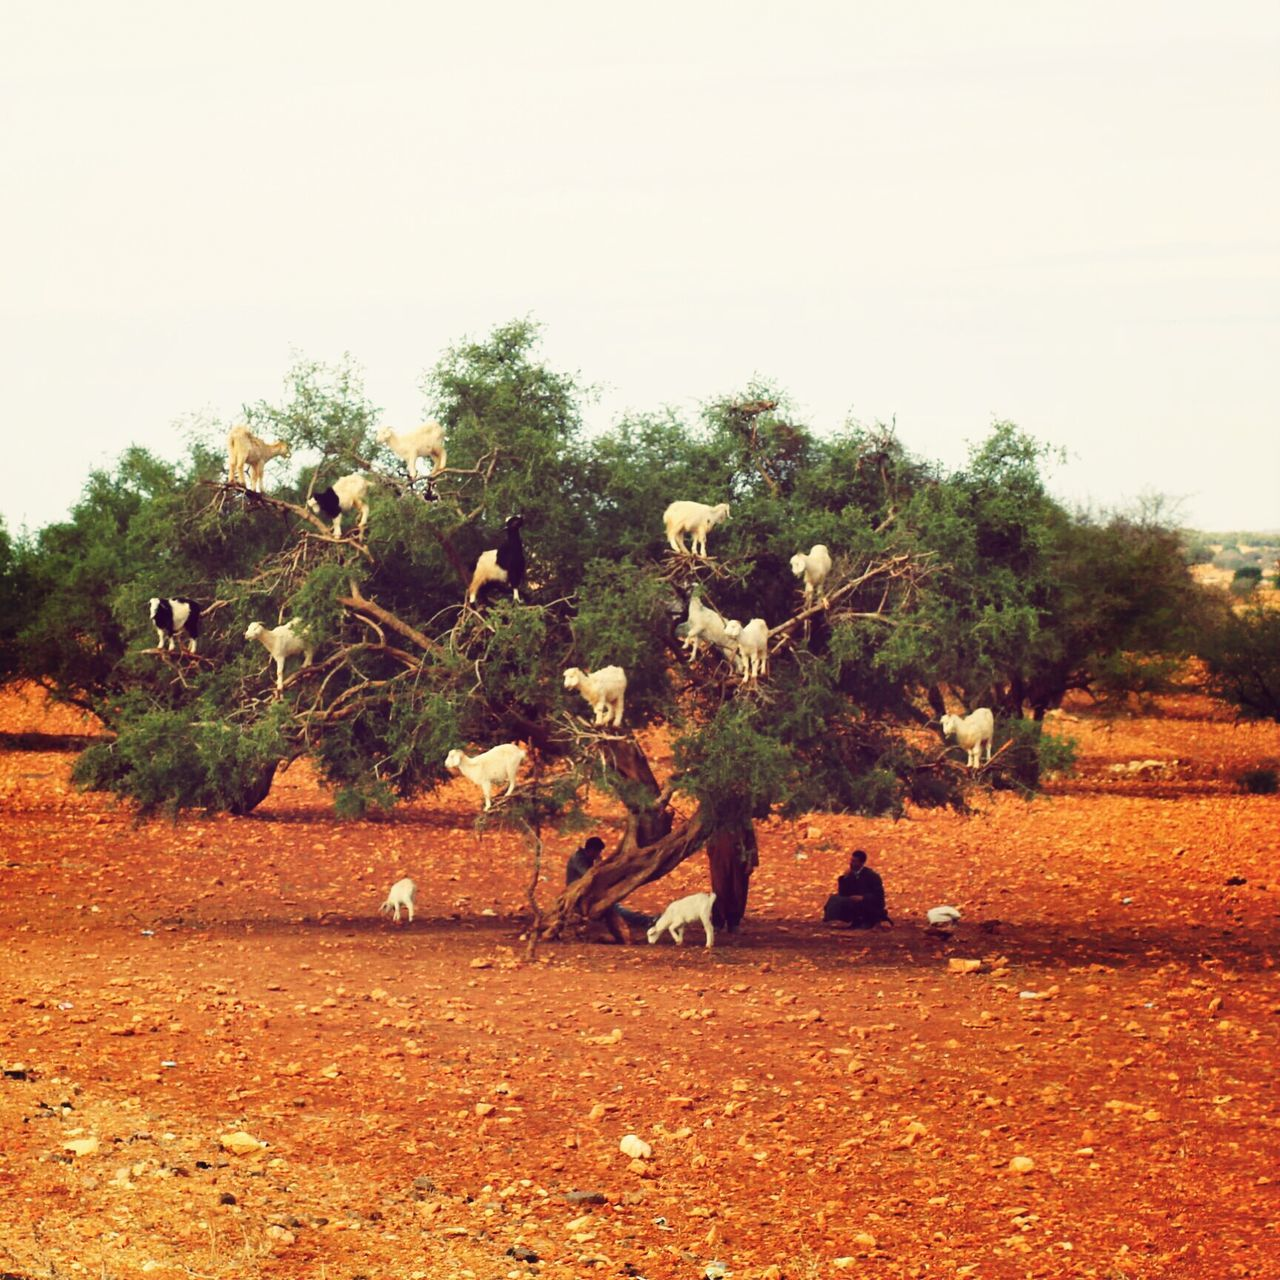 Traveling Morocco Holidays Check This Out ArganOil Argan Argan Du Moroc Maroc TreePorn Service Animals